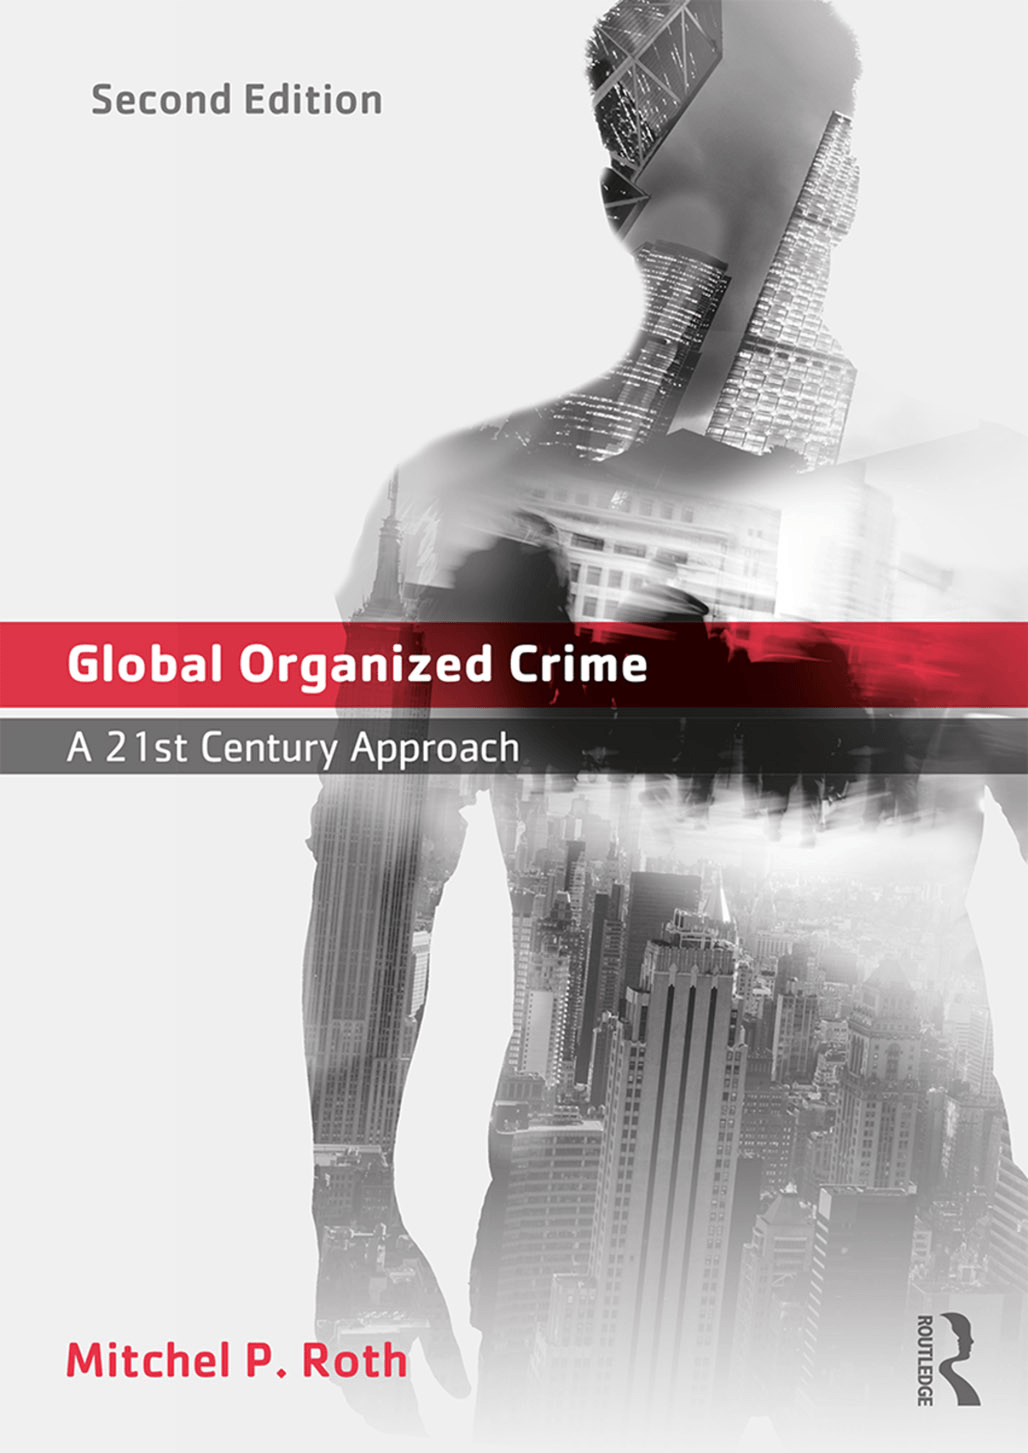 crime in the 21st century technology and terrorism essay Based on the brazil (2007) article, describe the challenges the fbi had in adapting to the 21st-century world of technology and terrorism discuss 3 aspects of the material that you learned this week that you can apply as an it manager.